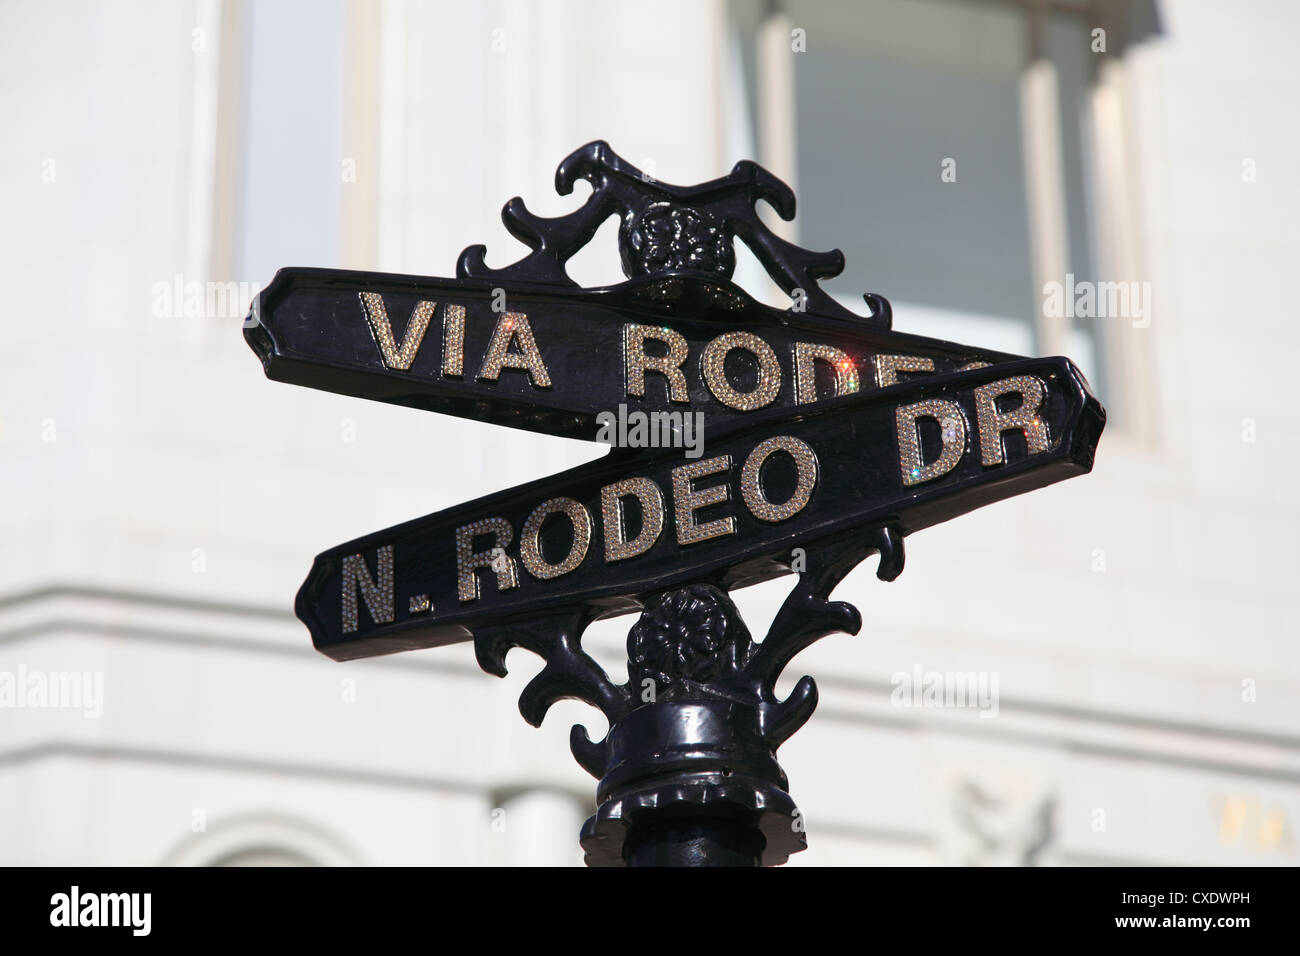 Street sign, Rodeo Drive, Beverly Hills, Los Angeles, California, USA - Stock Image